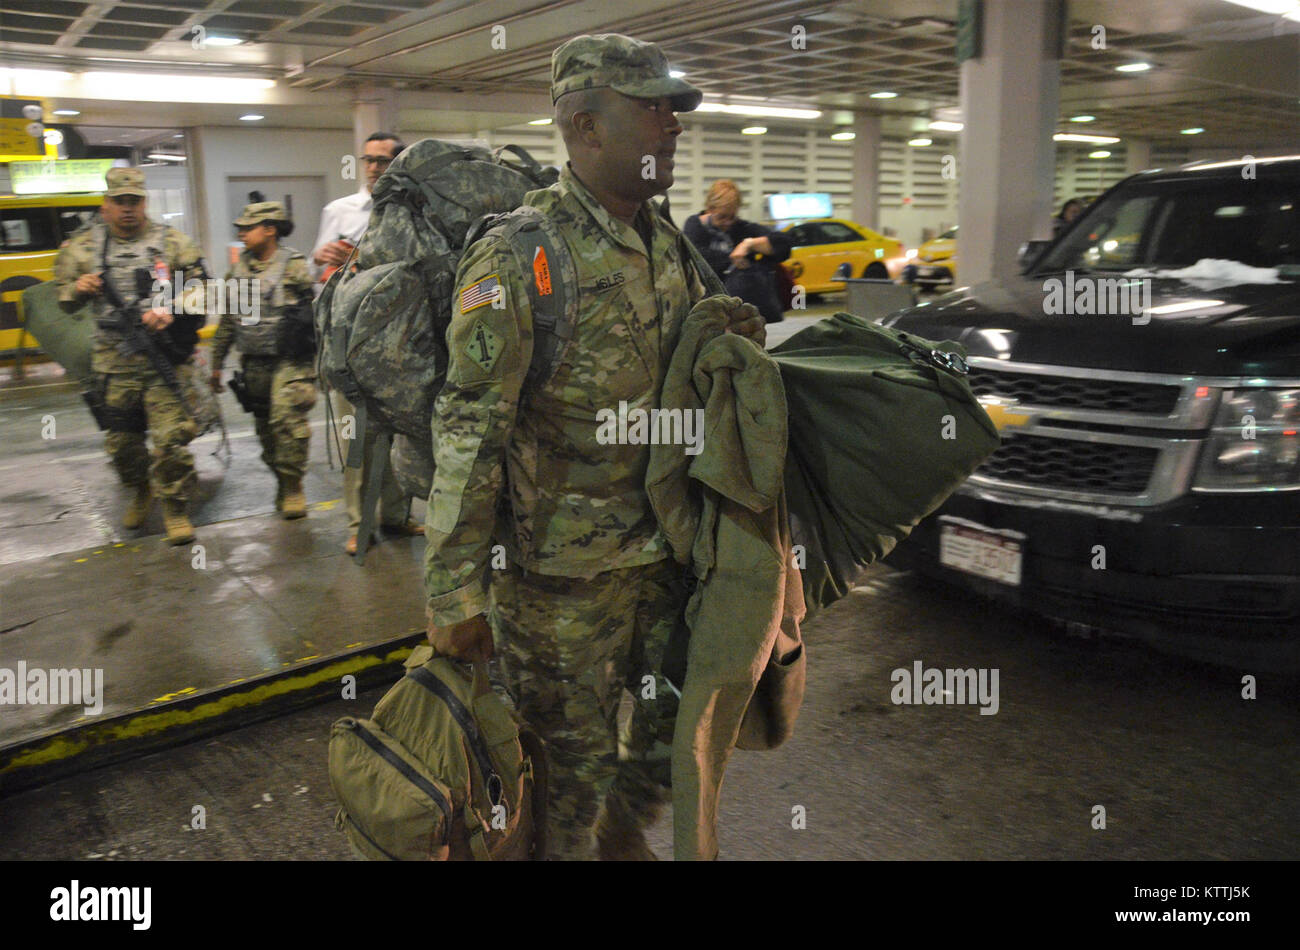 JFK Airport, Queens, NY – On December 15th, 2017, over 30 Soldiers ...